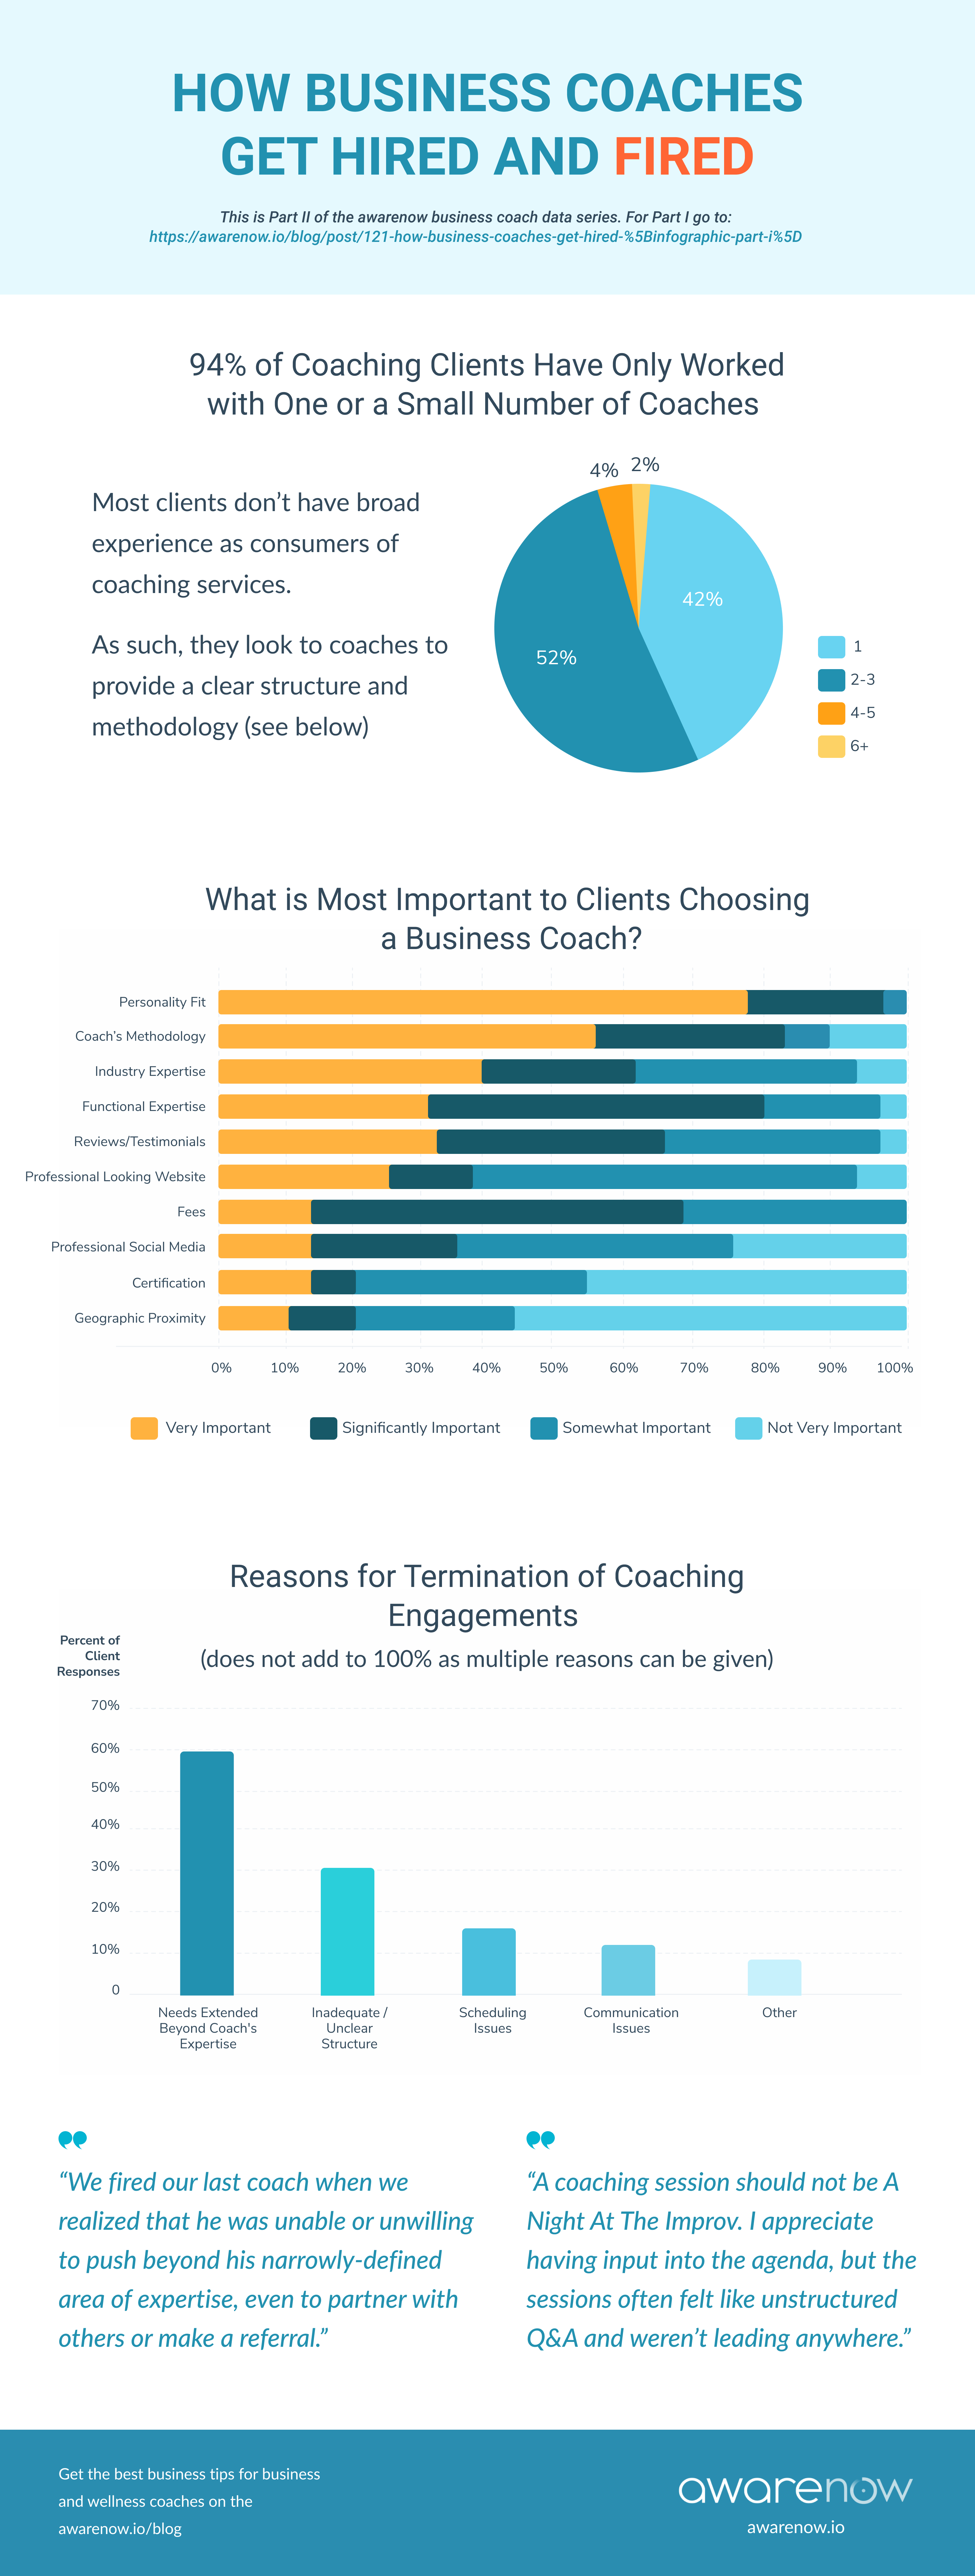 How Business Coaches Get Fired